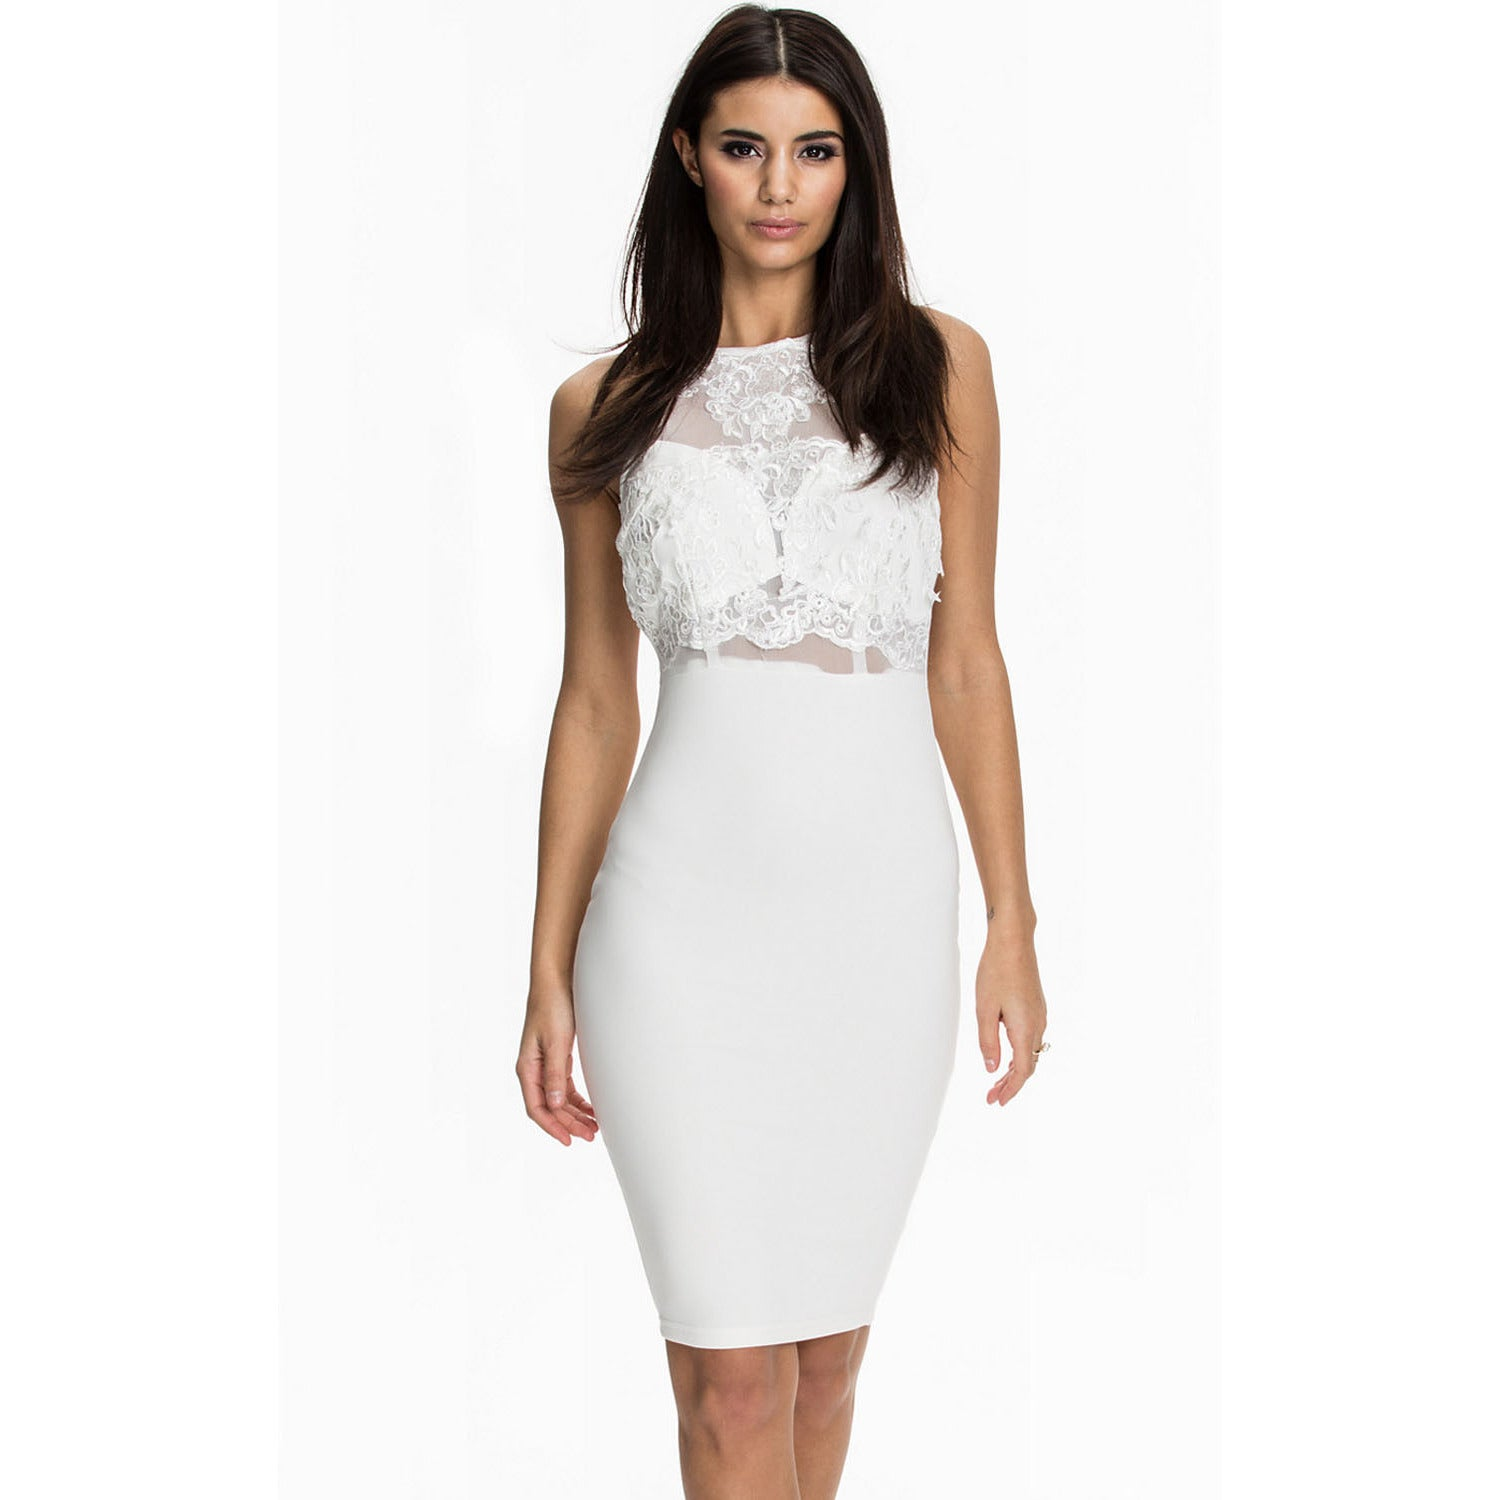 White Top Sleeveless Midi Dress Sale LAVELIQ - LAVELIQ - 1